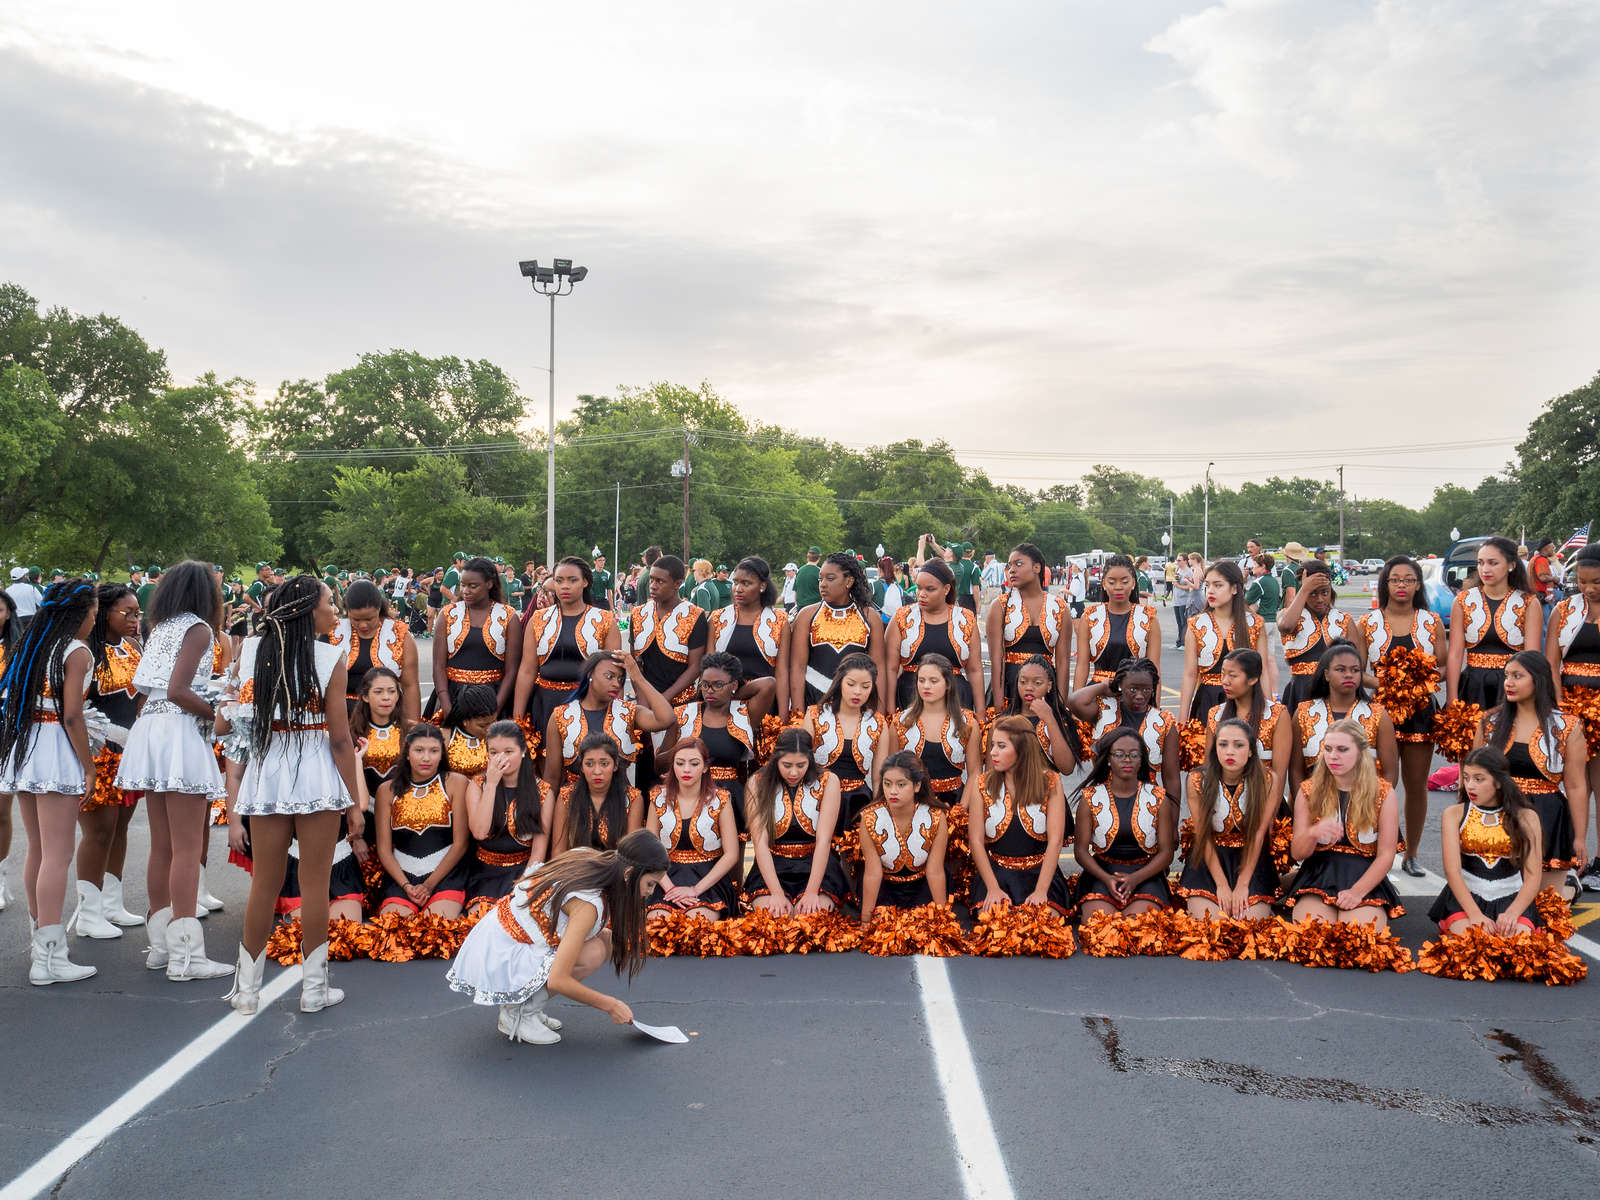 Cheerleaders prepare for a group photograph ahead of the 4th July Independence Day parade in Arlington.Dallas is a major city in Texas and is the largest urban center of the fourth most populous metropolitan area in the United States. The city ranks ninth in the U.S. and third in Texas after Houston and San Antonio. The city's prominence arose from its historical importance as a center for the oil and cotton industries, and its position along numerous railroad lines.For two weeks in the summer of 2015, photographer Peter Dench visited Dallas to document the metroplex in his epic reportage, DENCH DOES DALLAS.Photographed using an Olympus E-M5 Mark II©Peter Dench/Getty Images Reportage